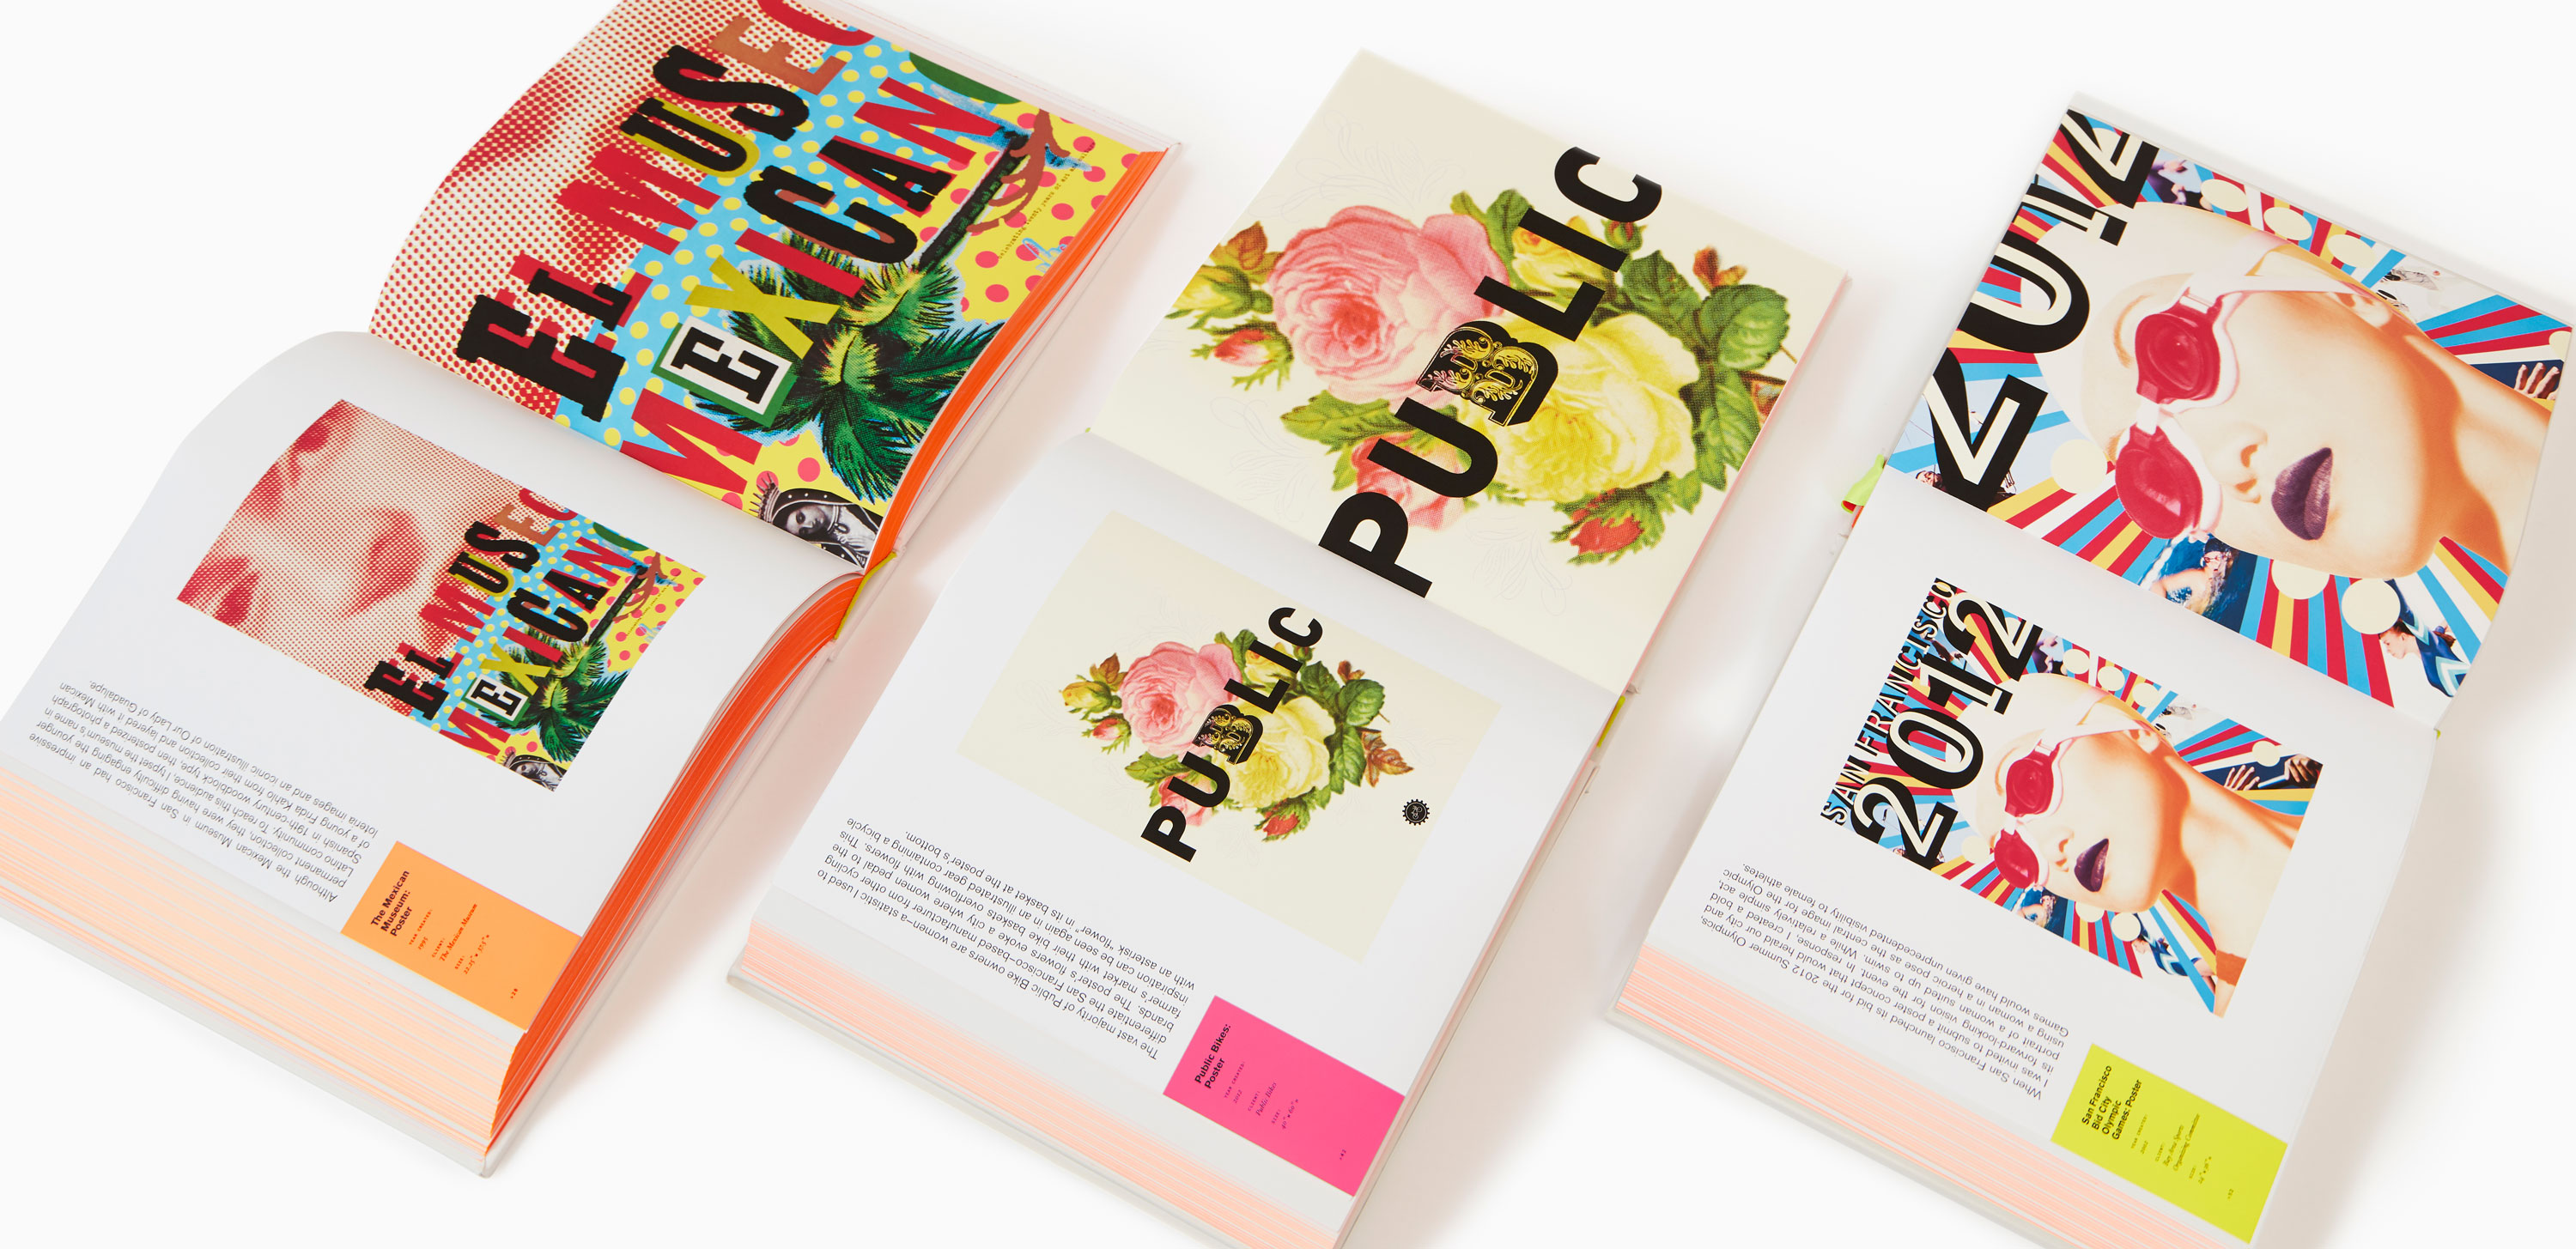 11135562c6c0b 158 projects in branding, print, animation, packaging, furniture, and  retail store design—plus examples of her fine art—give a generous overview  of Morla's ...